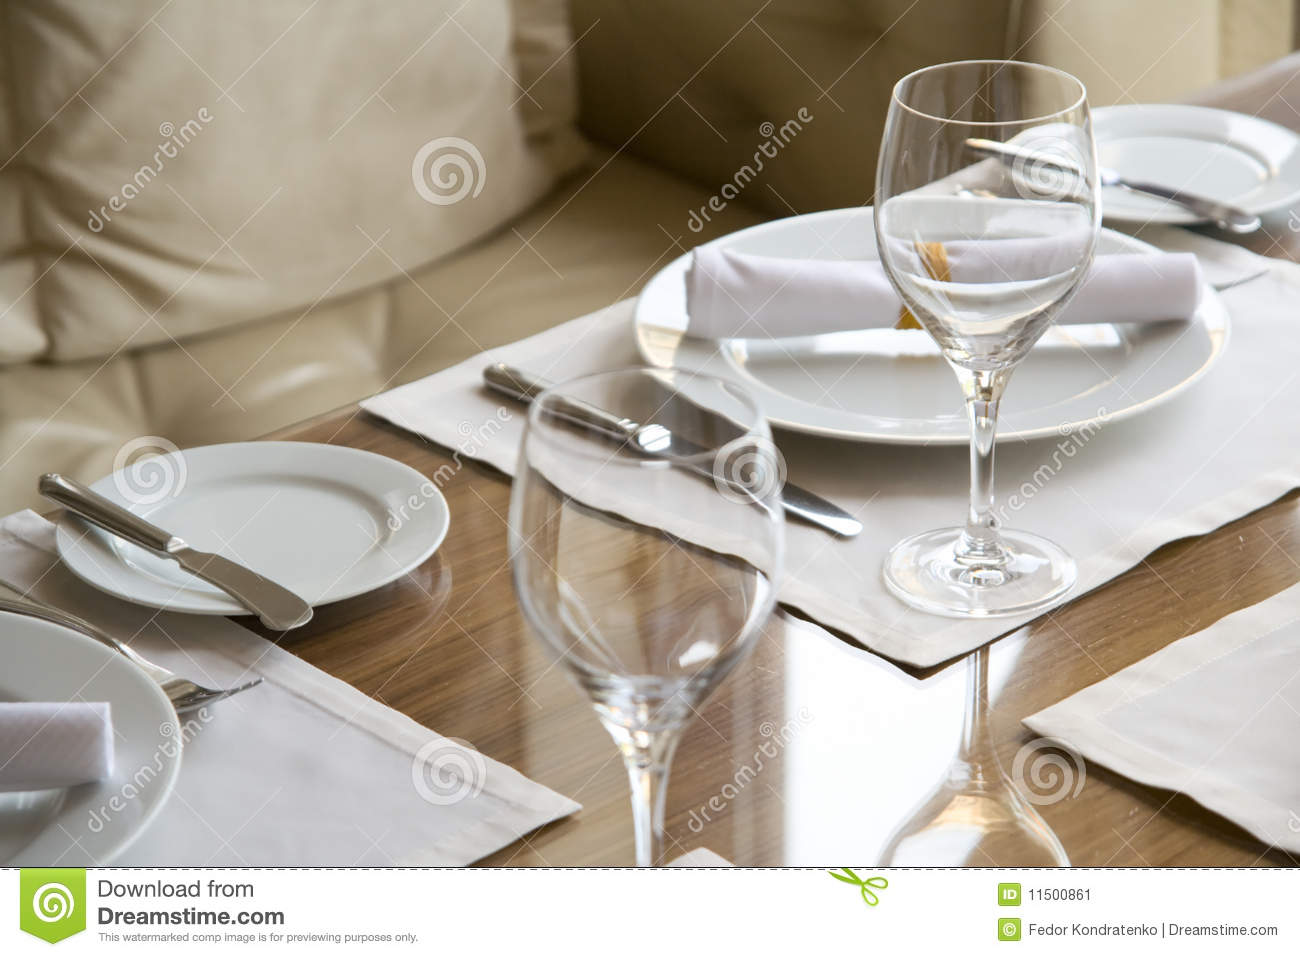 table arrangement in expensive restaurant stock image. Black Bedroom Furniture Sets. Home Design Ideas